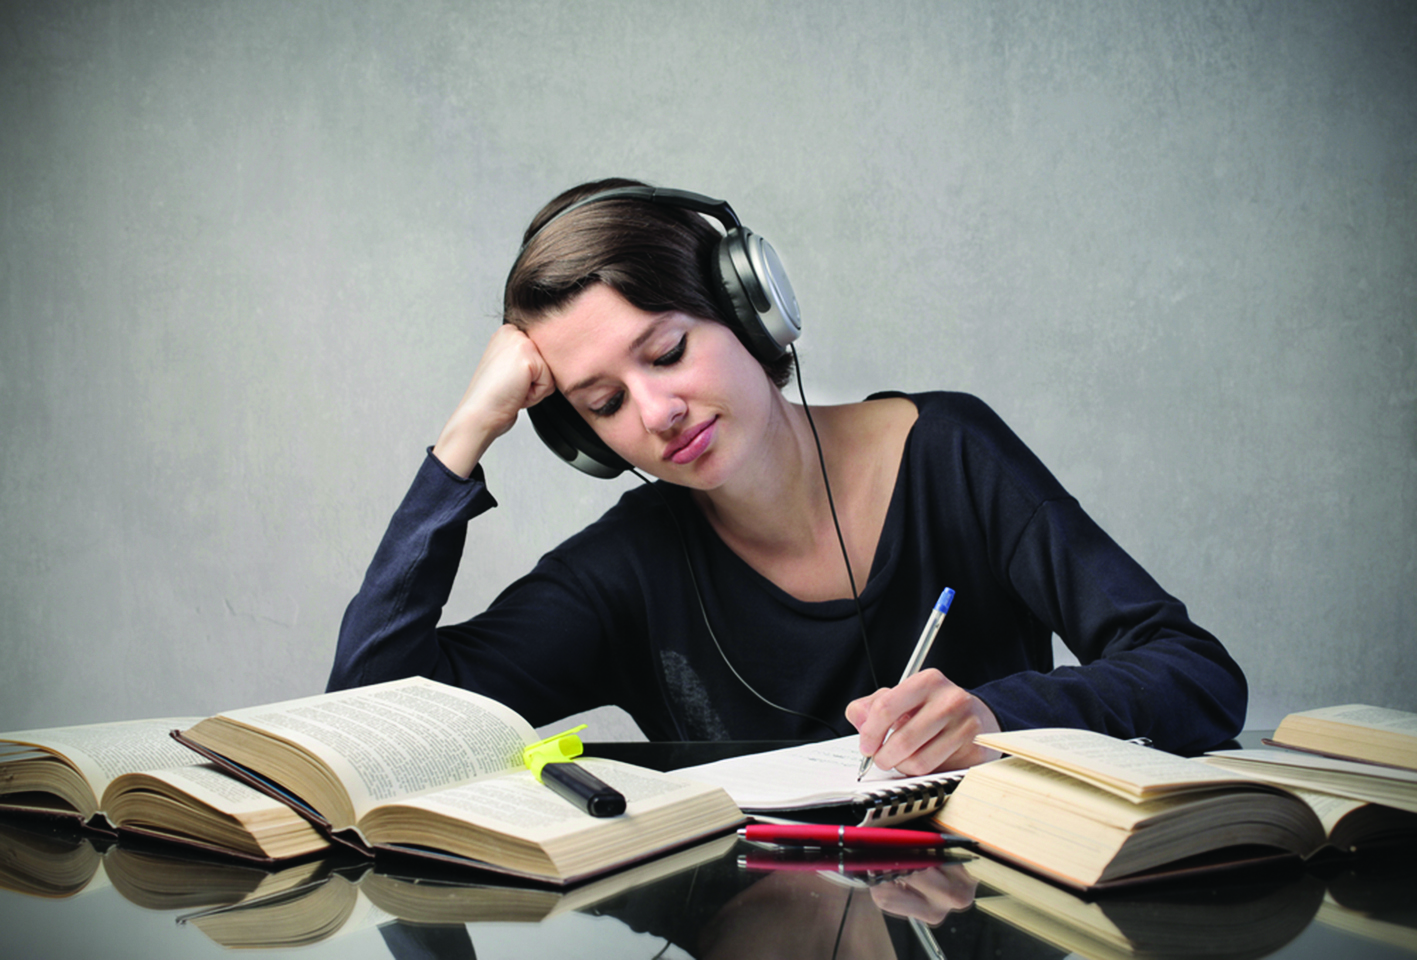 81372991SS-Female-student-listening-to-headphones